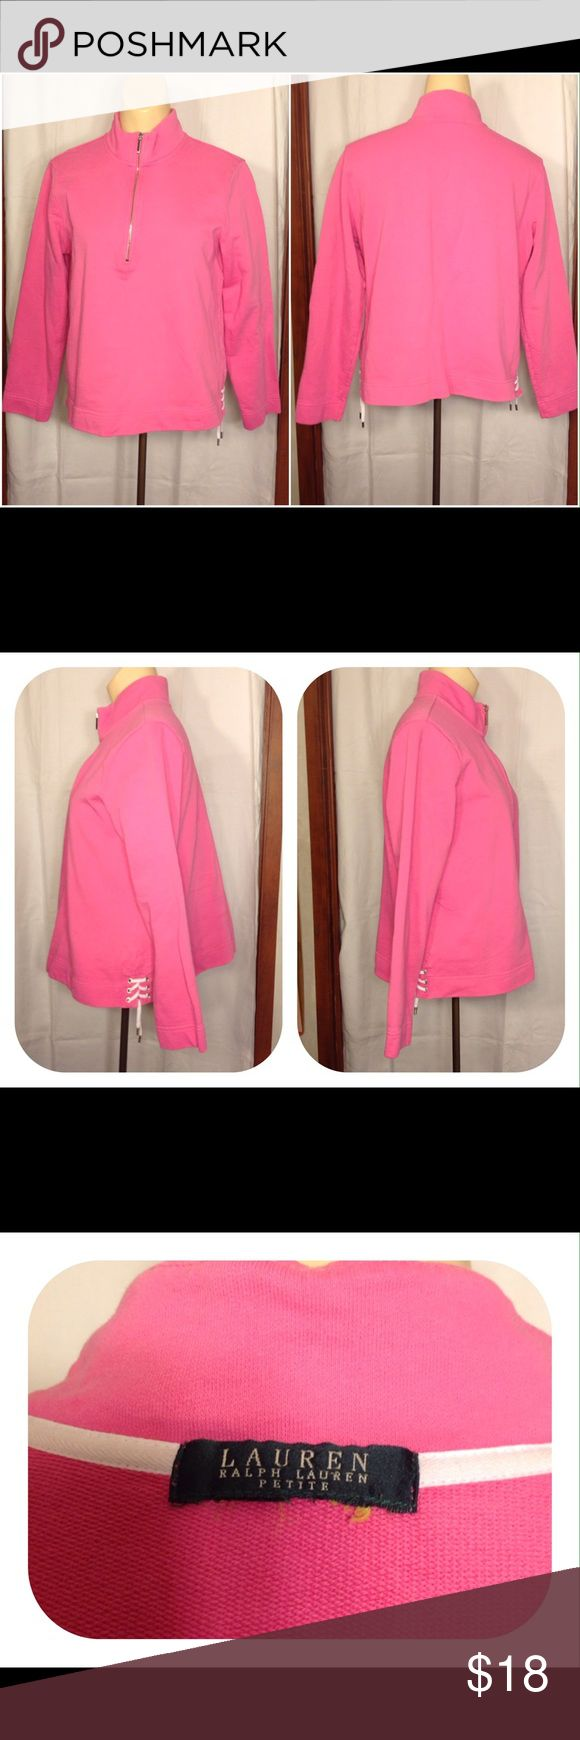 Pink Ralph Lauren Petite Pullover Sweatshirt Women's pink Ralph Lauren Petite pullover sweatshirt.  This beautiful pullover sweatshirt is a partial zip up shoestring tie on each side near hemline and no exterior pockets.    Measurements   Armpit = 20.25   Shoulder = 16   Sleeve = 21   Length = 22.25  1#46 Ralph Lauren  Petite Other